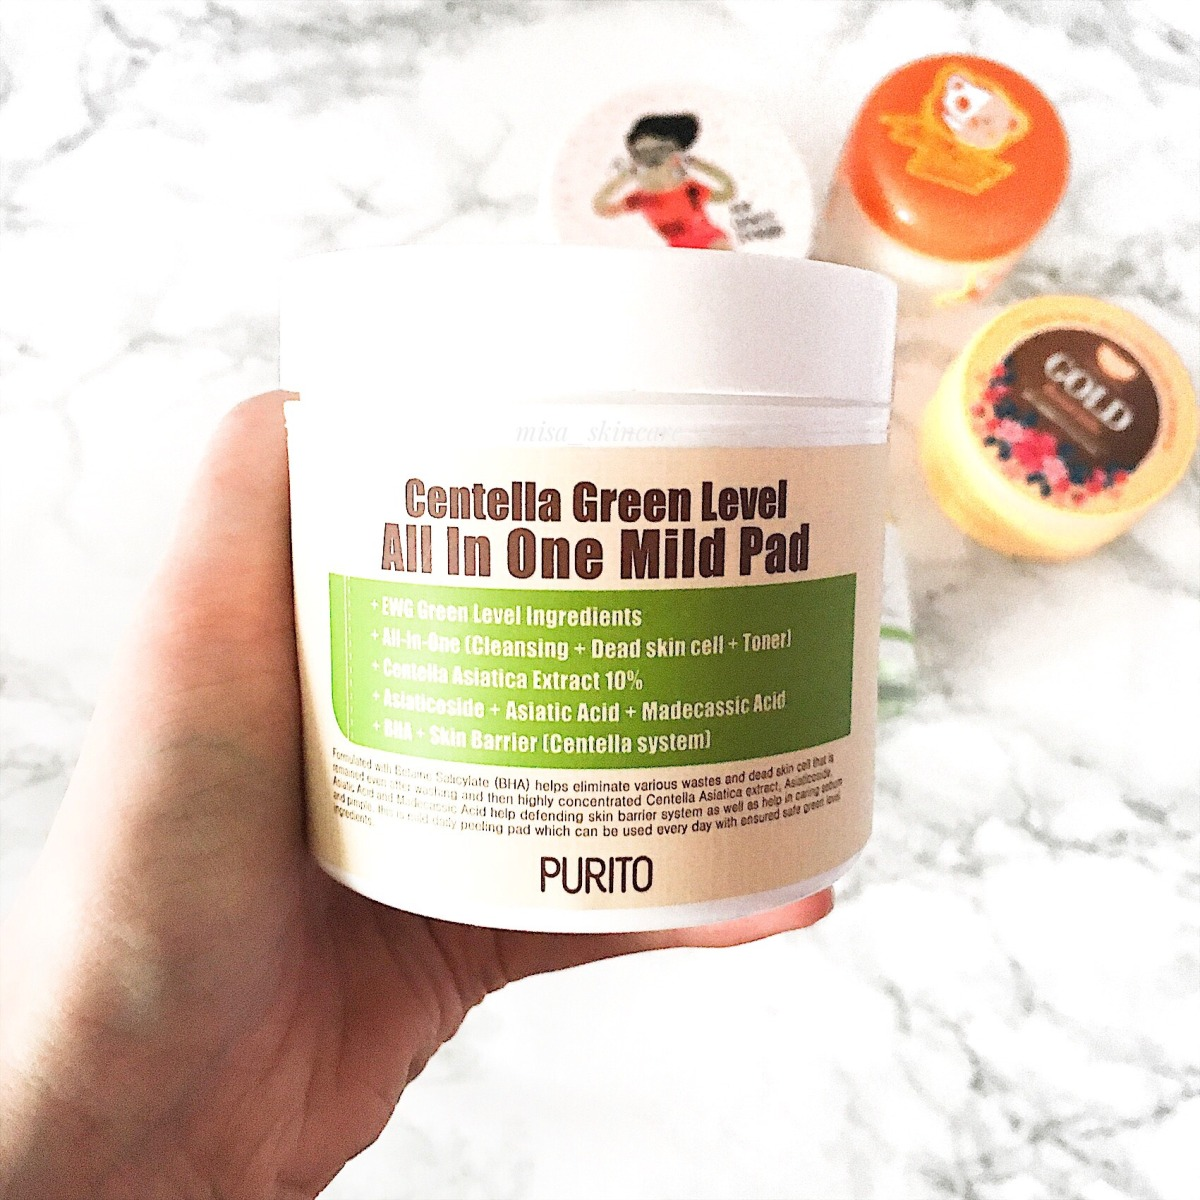 Review Purito Centella Green Level ALL in One Mild Pad*